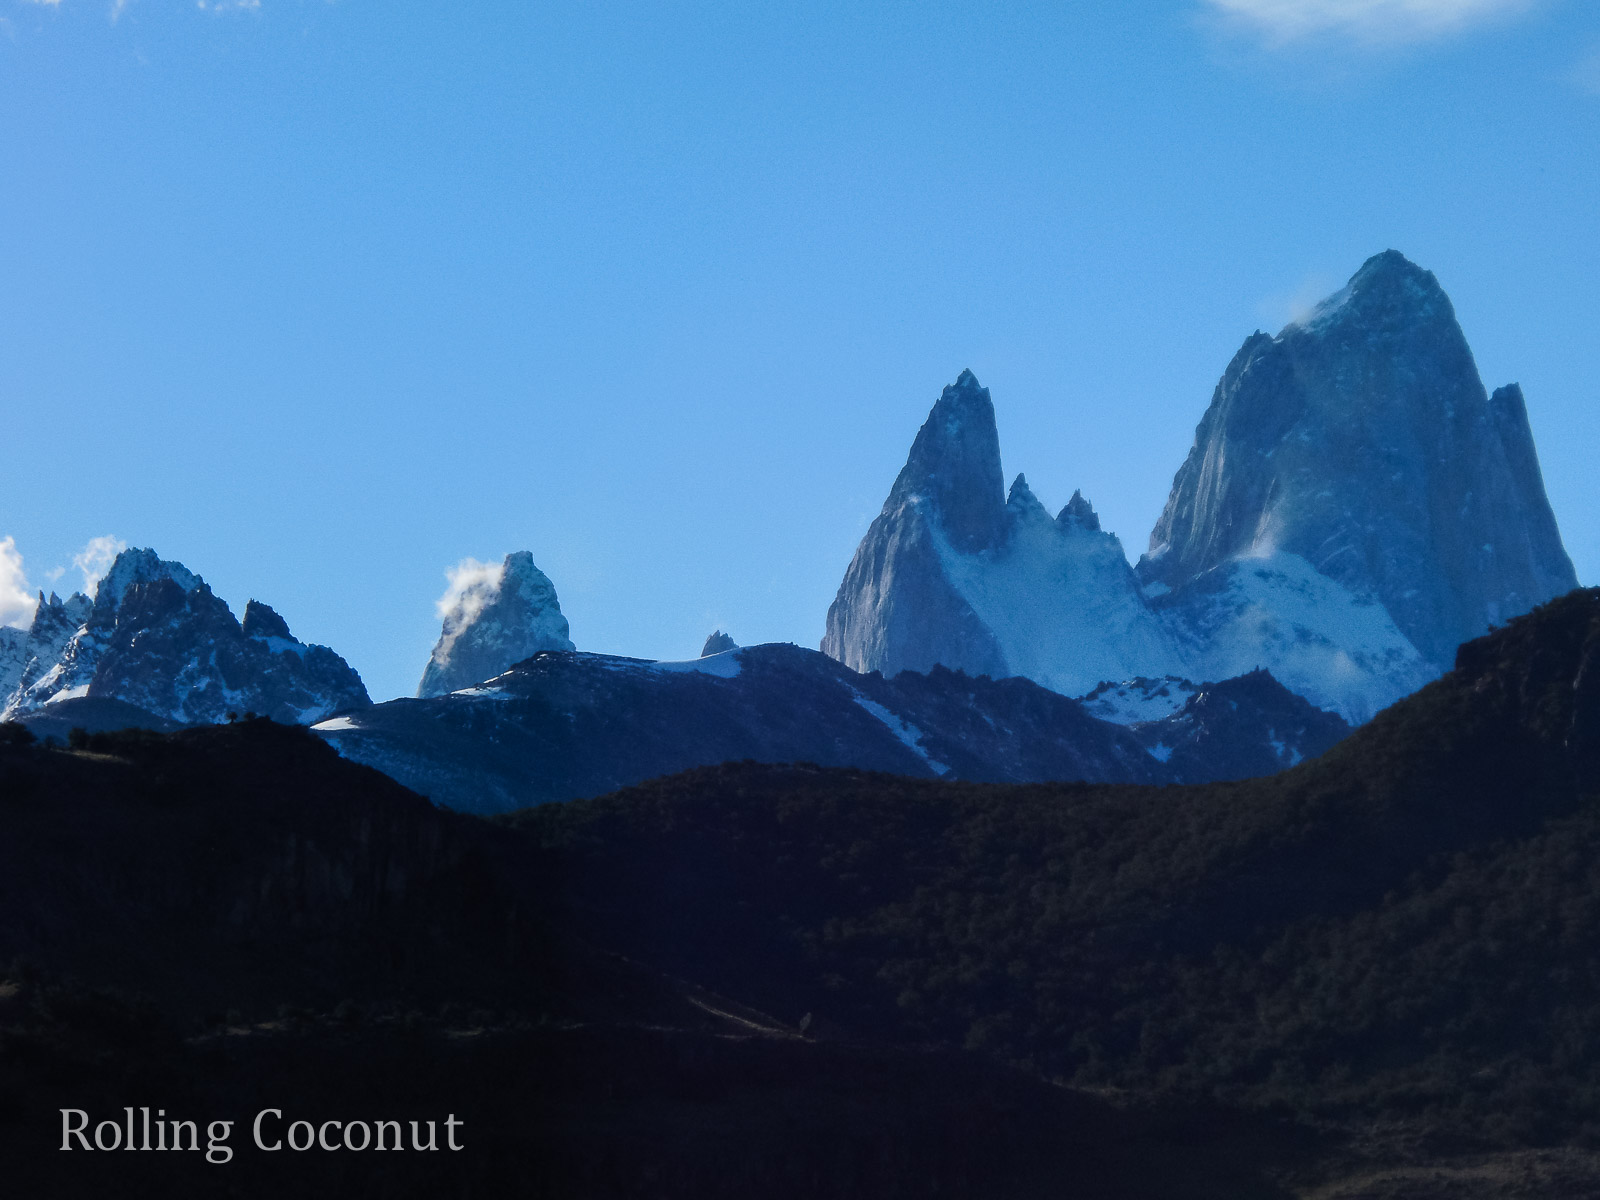 El Chalten Argentina Patagonia Torres ooaworld Rolling Coconut Photo Ooaworld